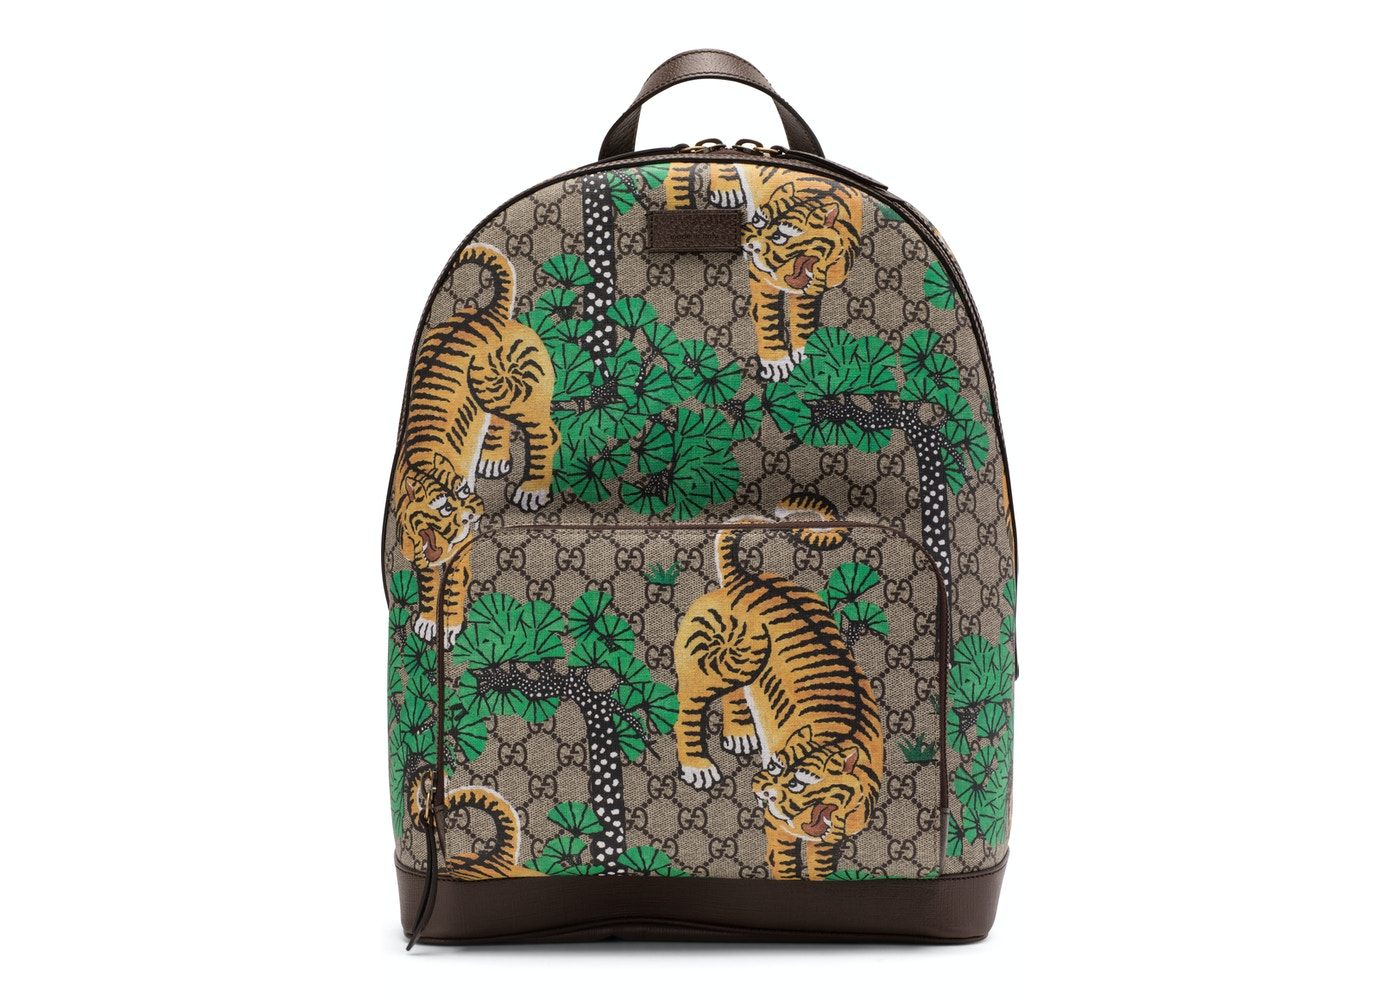 3f4491f367cb Wholesale AAA Gucci Designer Backpacks 014 Source · Gucci Tiger Print  Backpack GG Supreme Monogram Brown Green Yellow